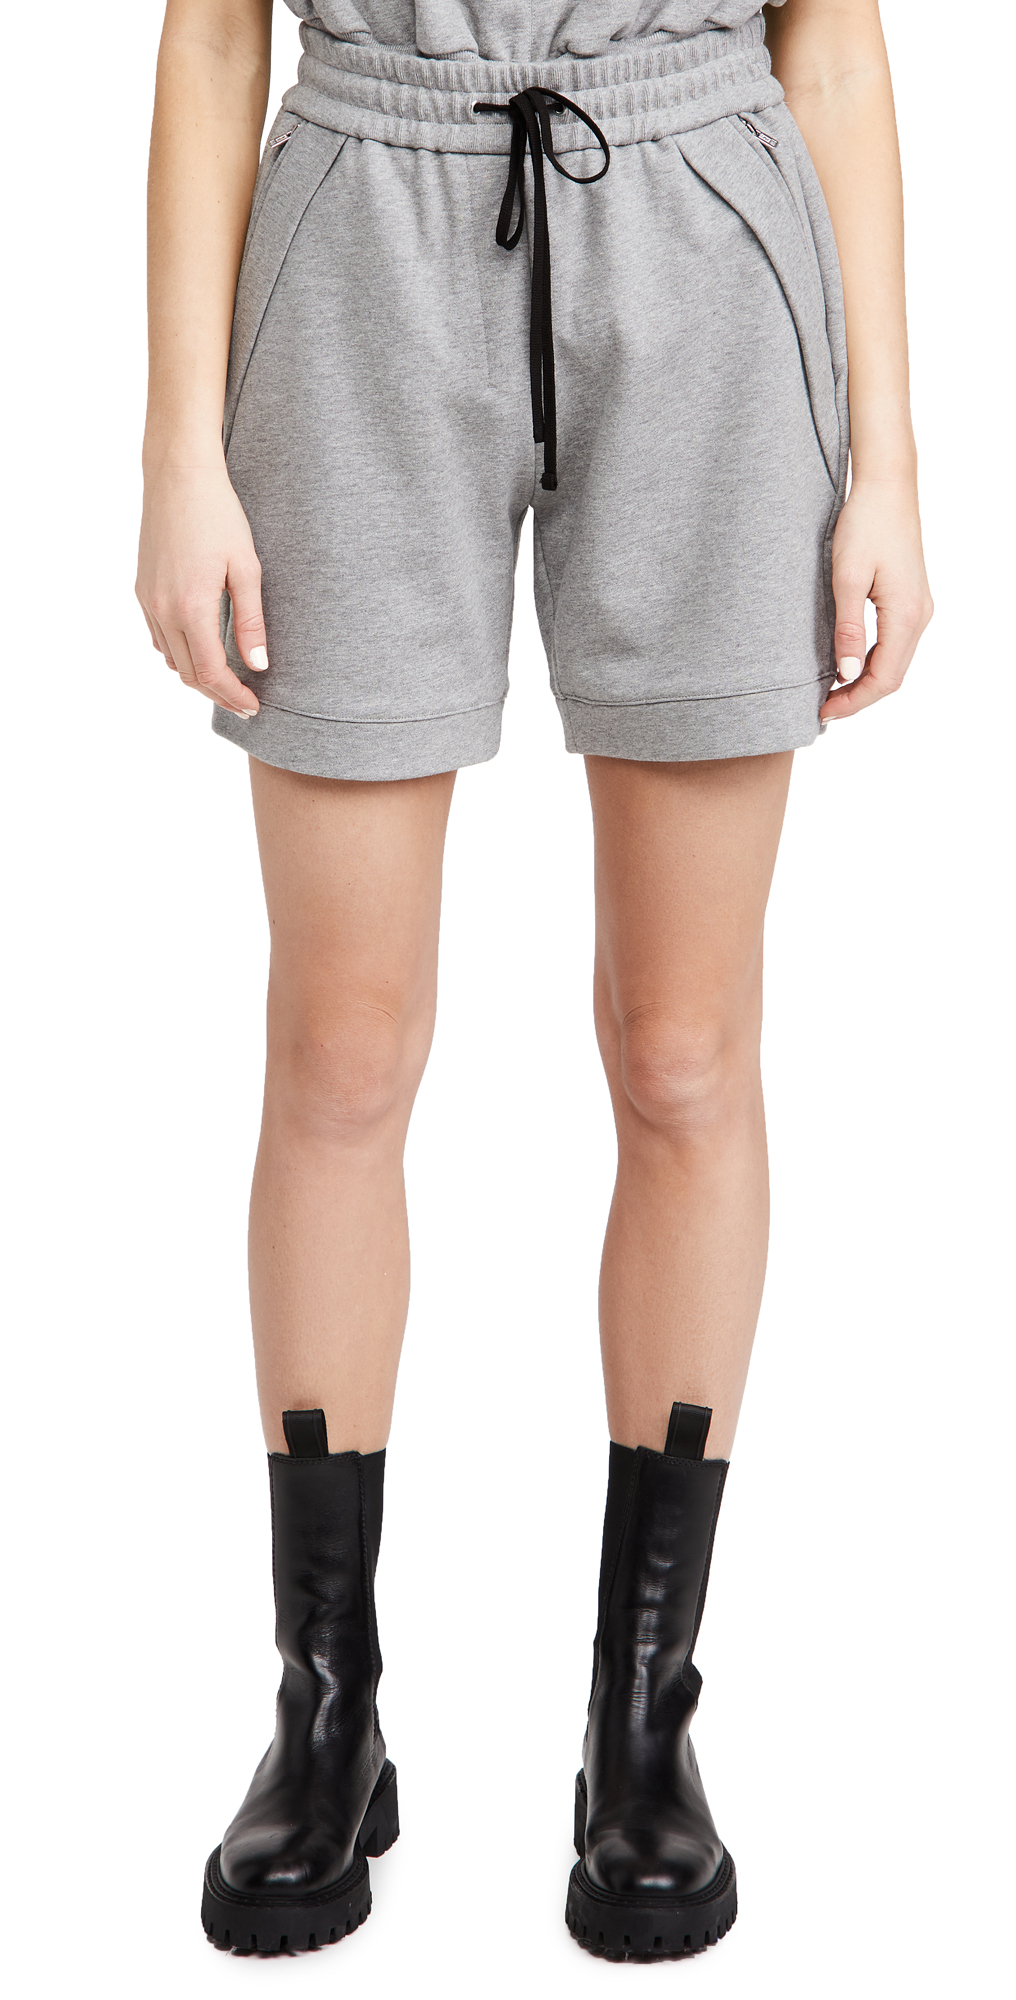 3.1 Phillip Lim French Terry Pull On Shorts